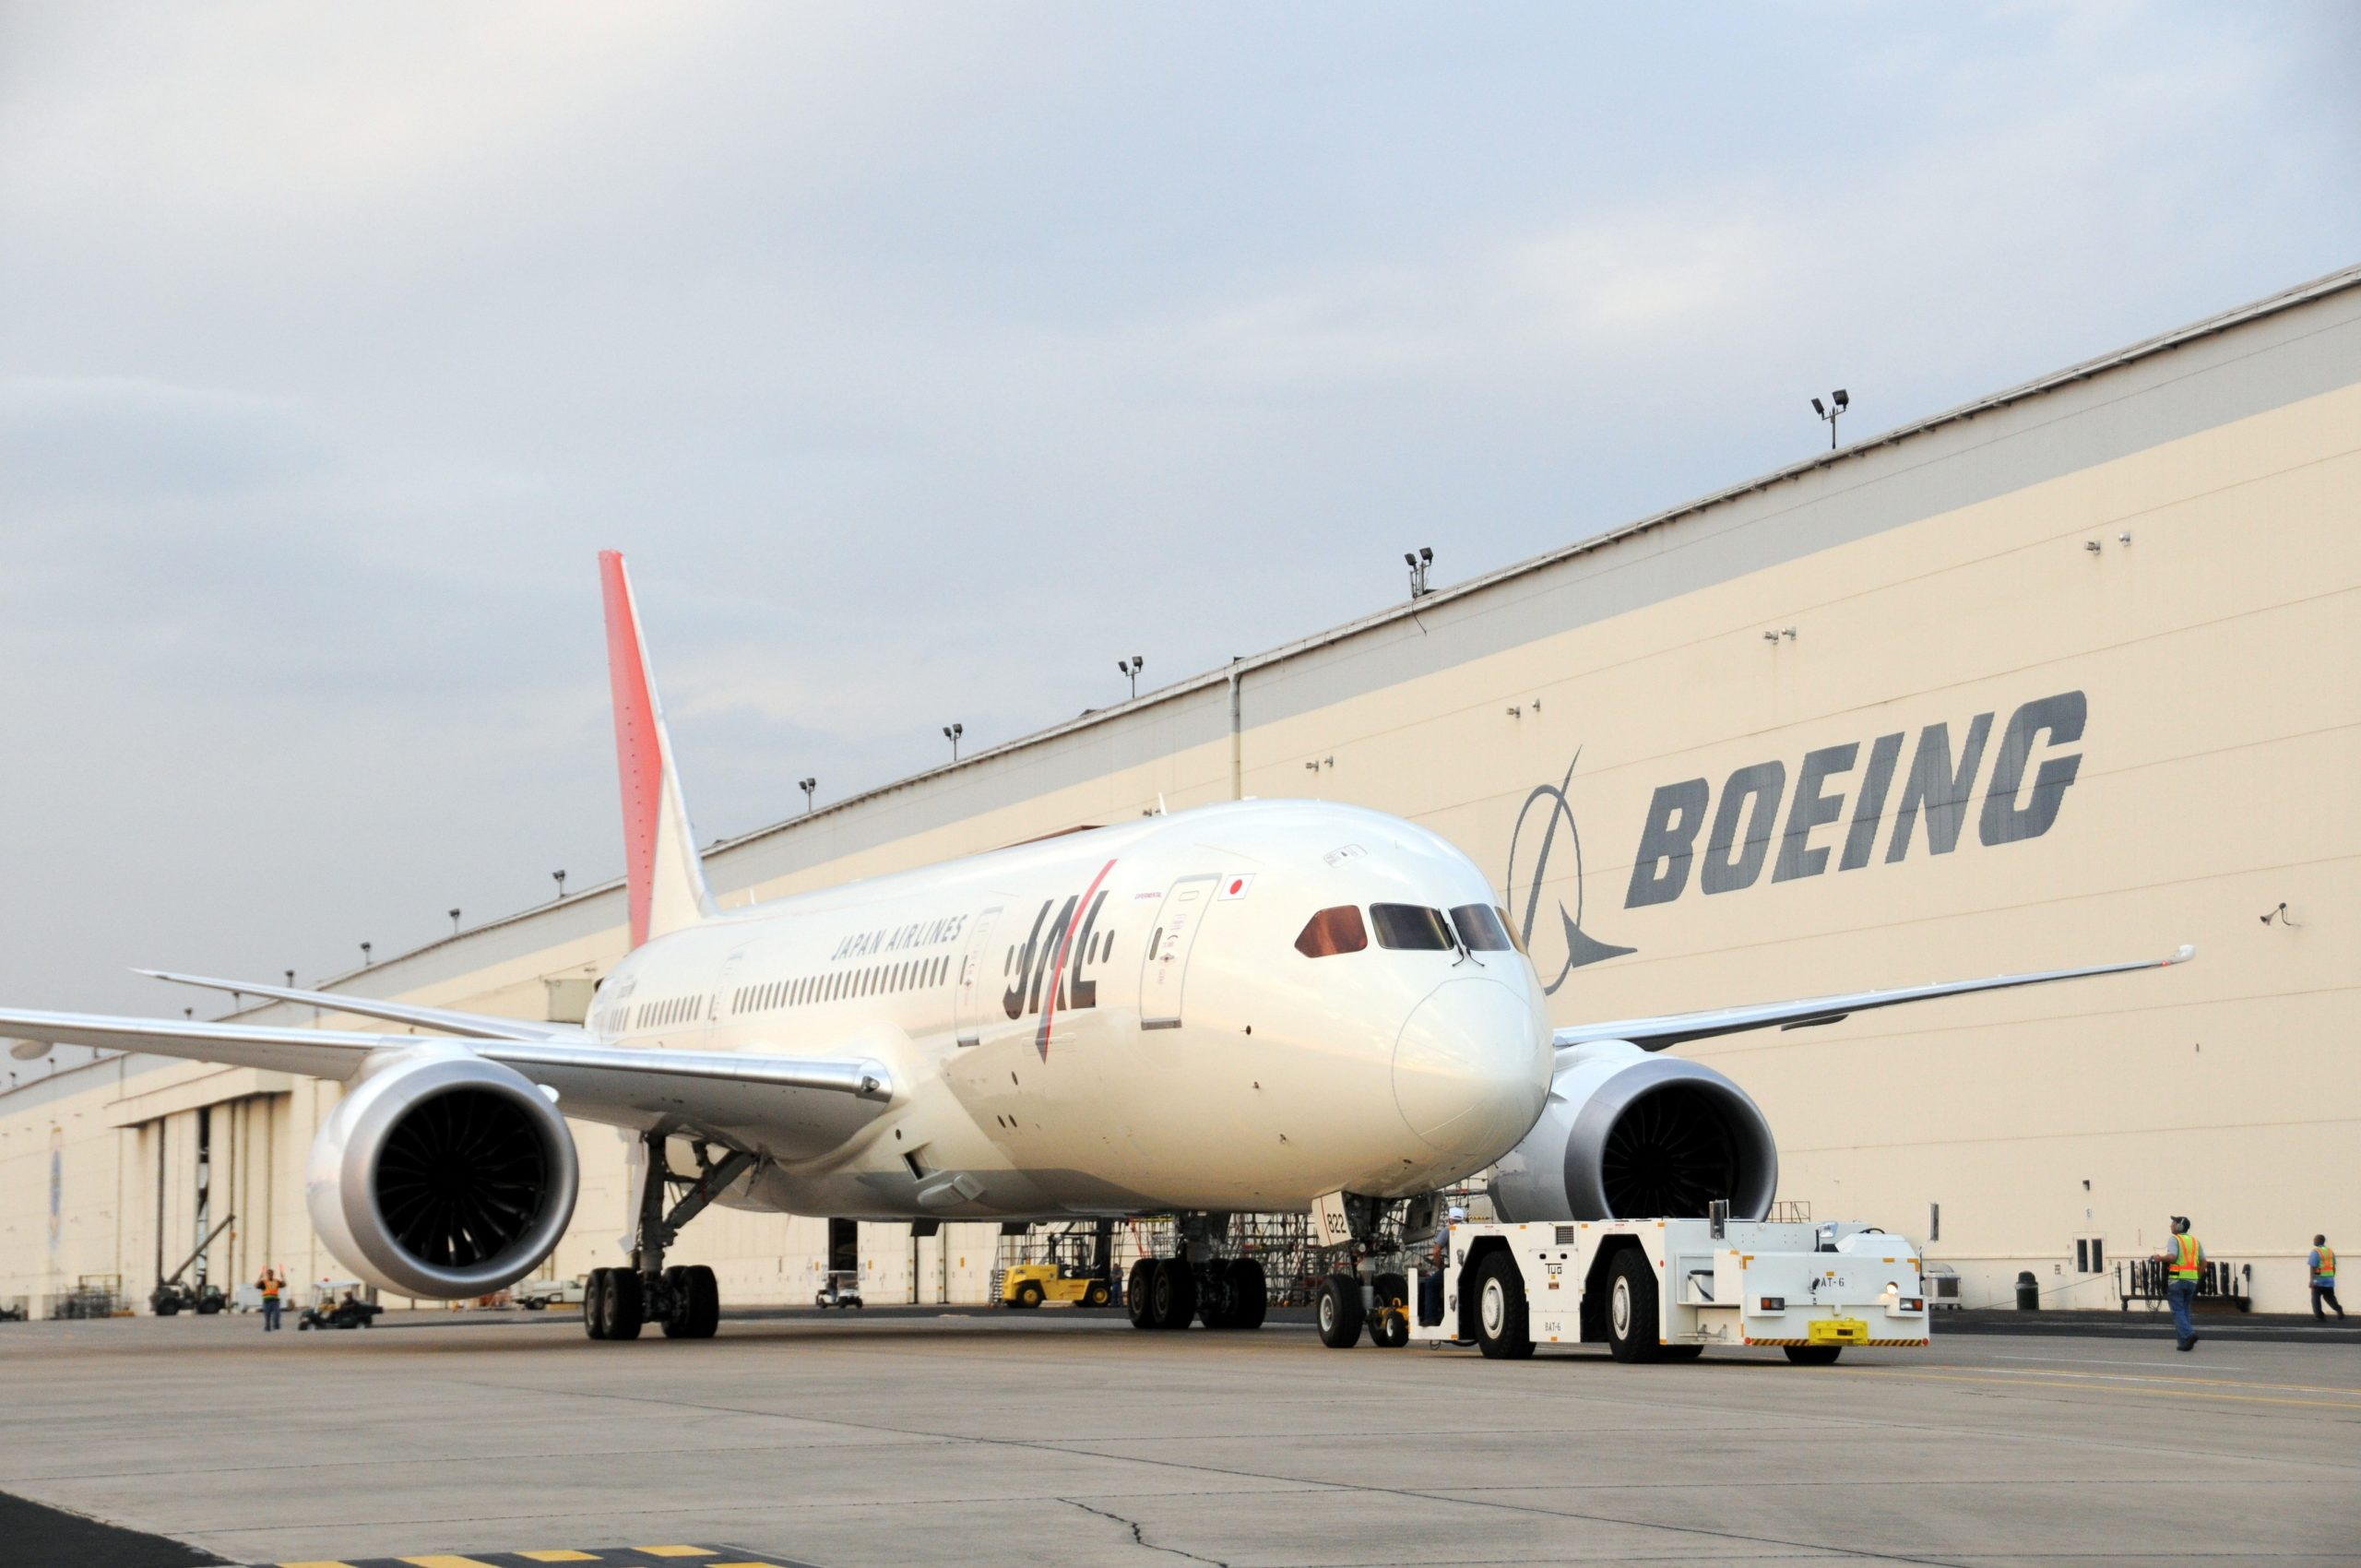 Boeing is a significant employer and source of aeronautical jobs at Port San Antonio.